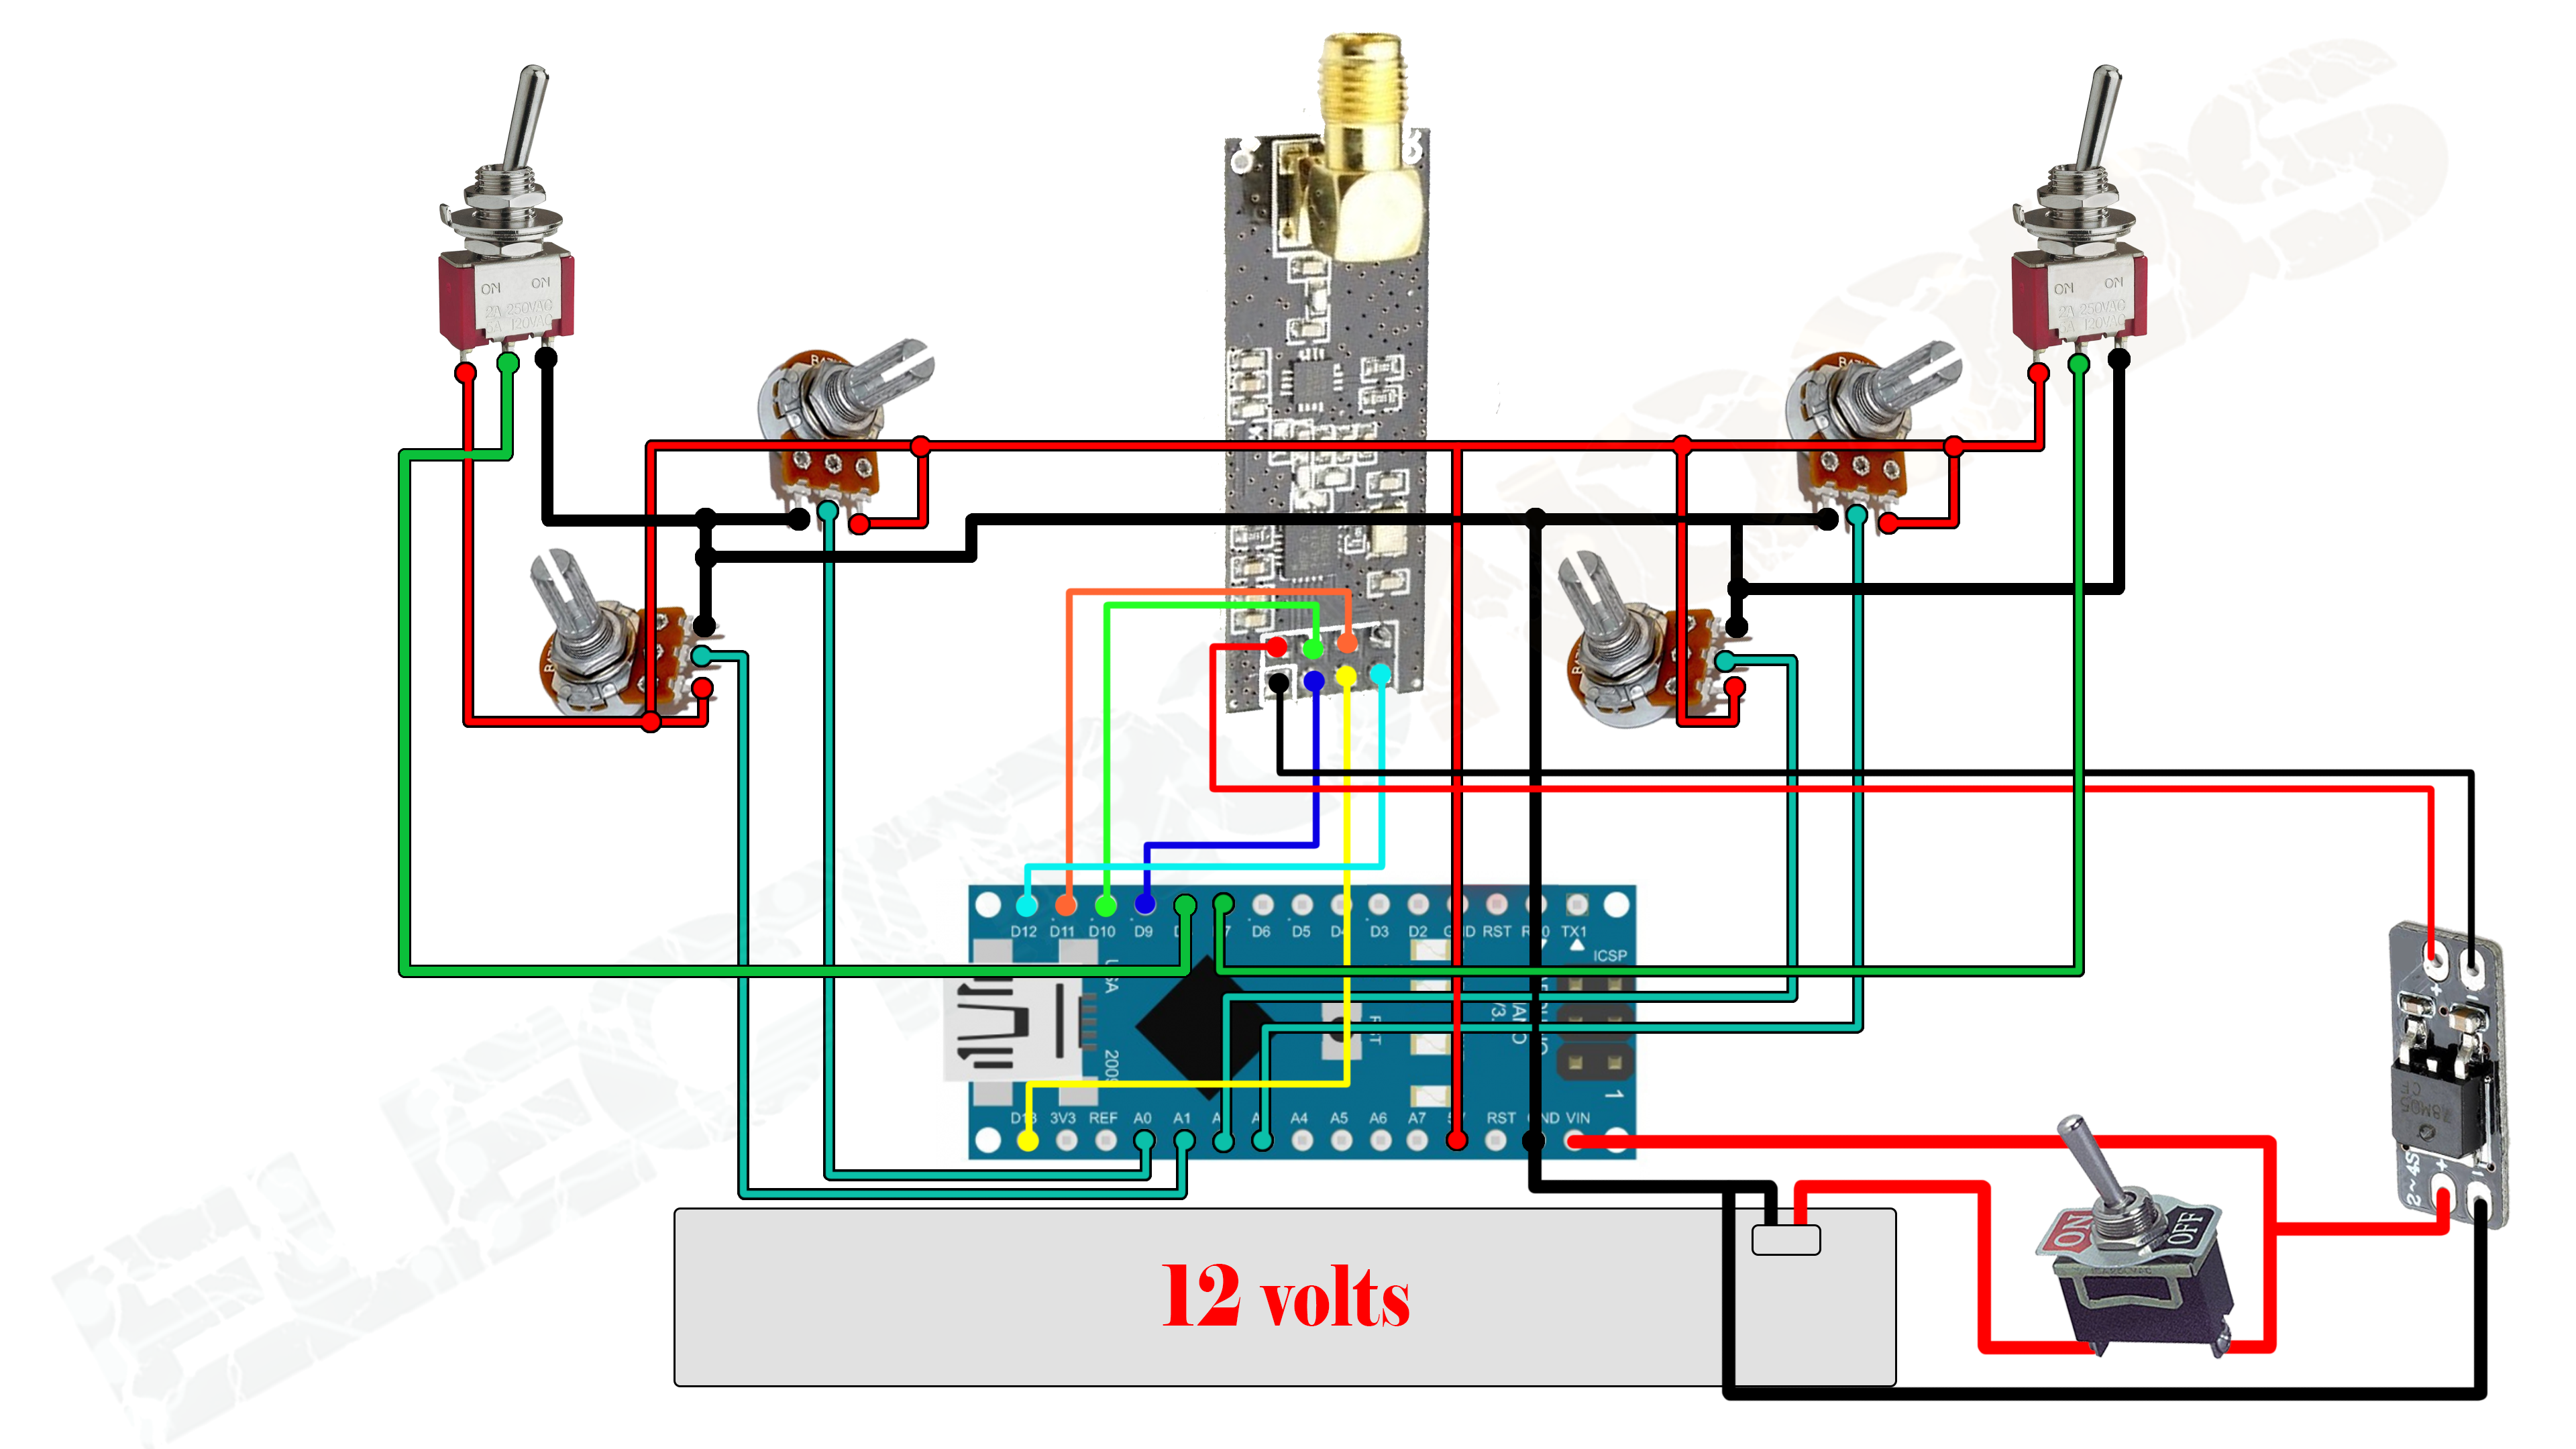 Diagram Raspberry Pi Drone Wiring Diagram Full Version Hd Quality Wiring Diagram Diagramcrowlp Abacusfirenze It